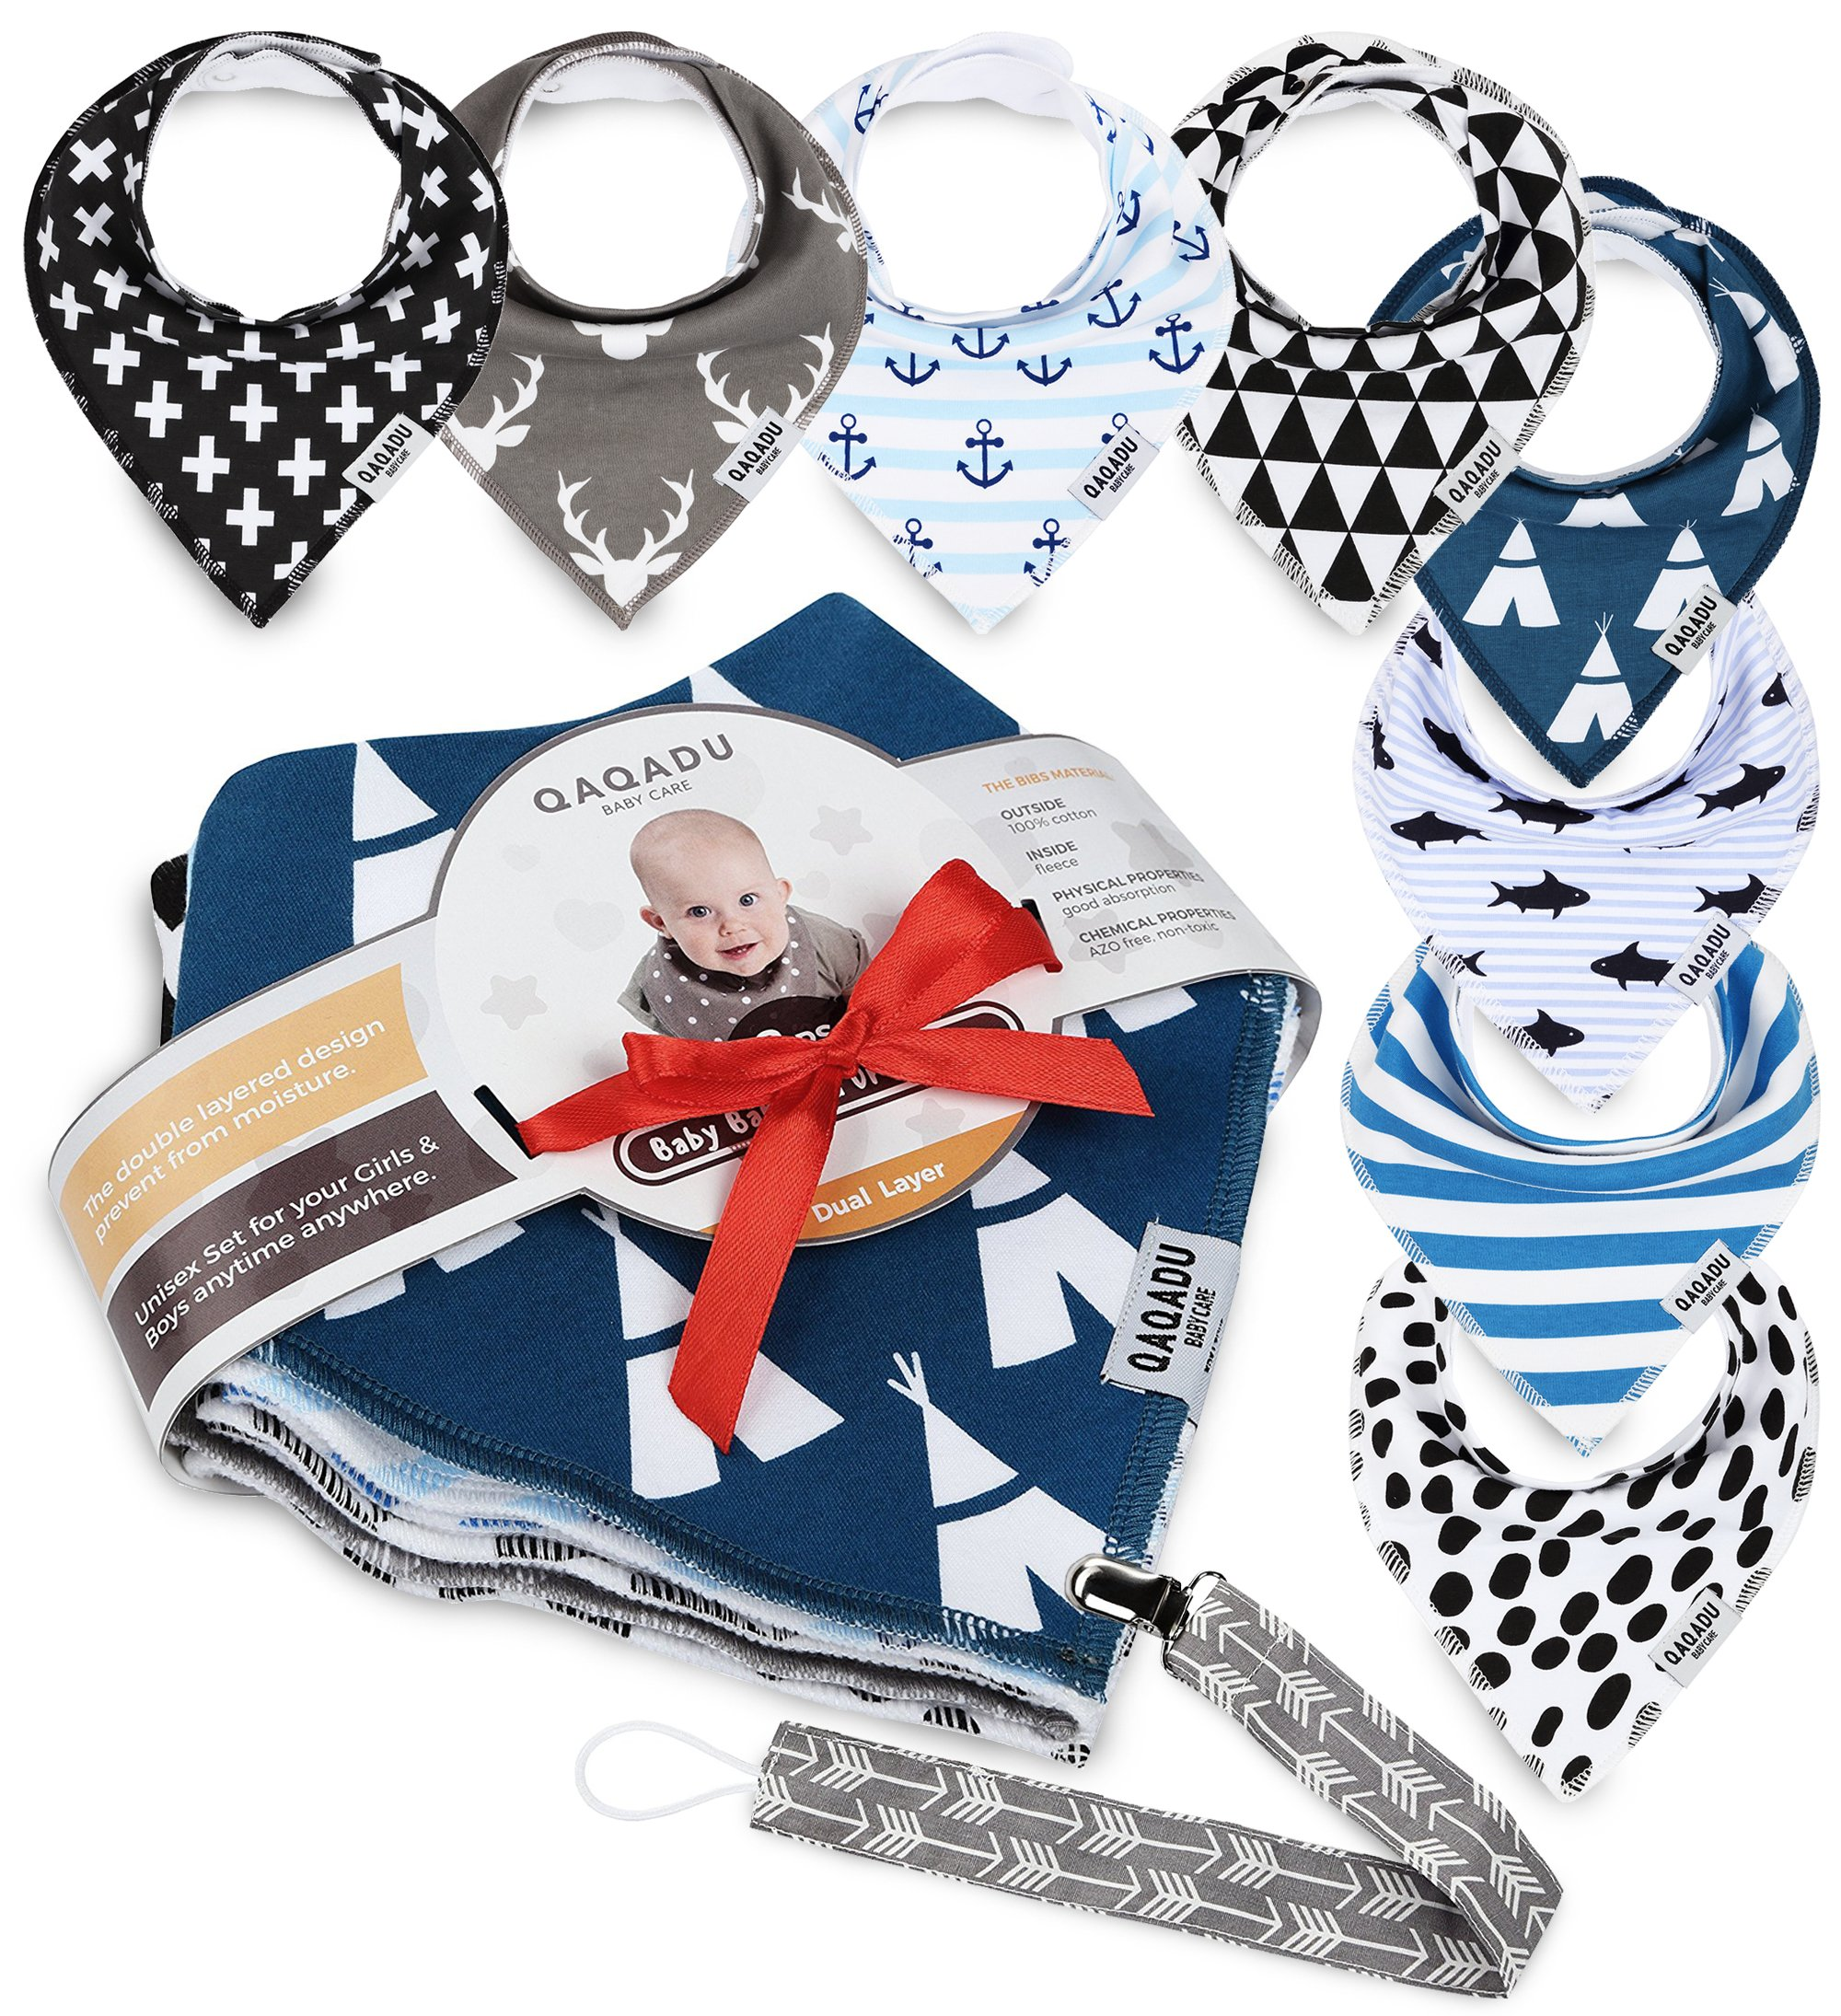 Baby Dribble Bibs Bandana for Girls Boys Unisex Set of 4 Yellow Cotton Gift Pack for Teething Fit Newborn Toddlers Soft Absorbent with Adjustable Snap Closure Stylish Pattern